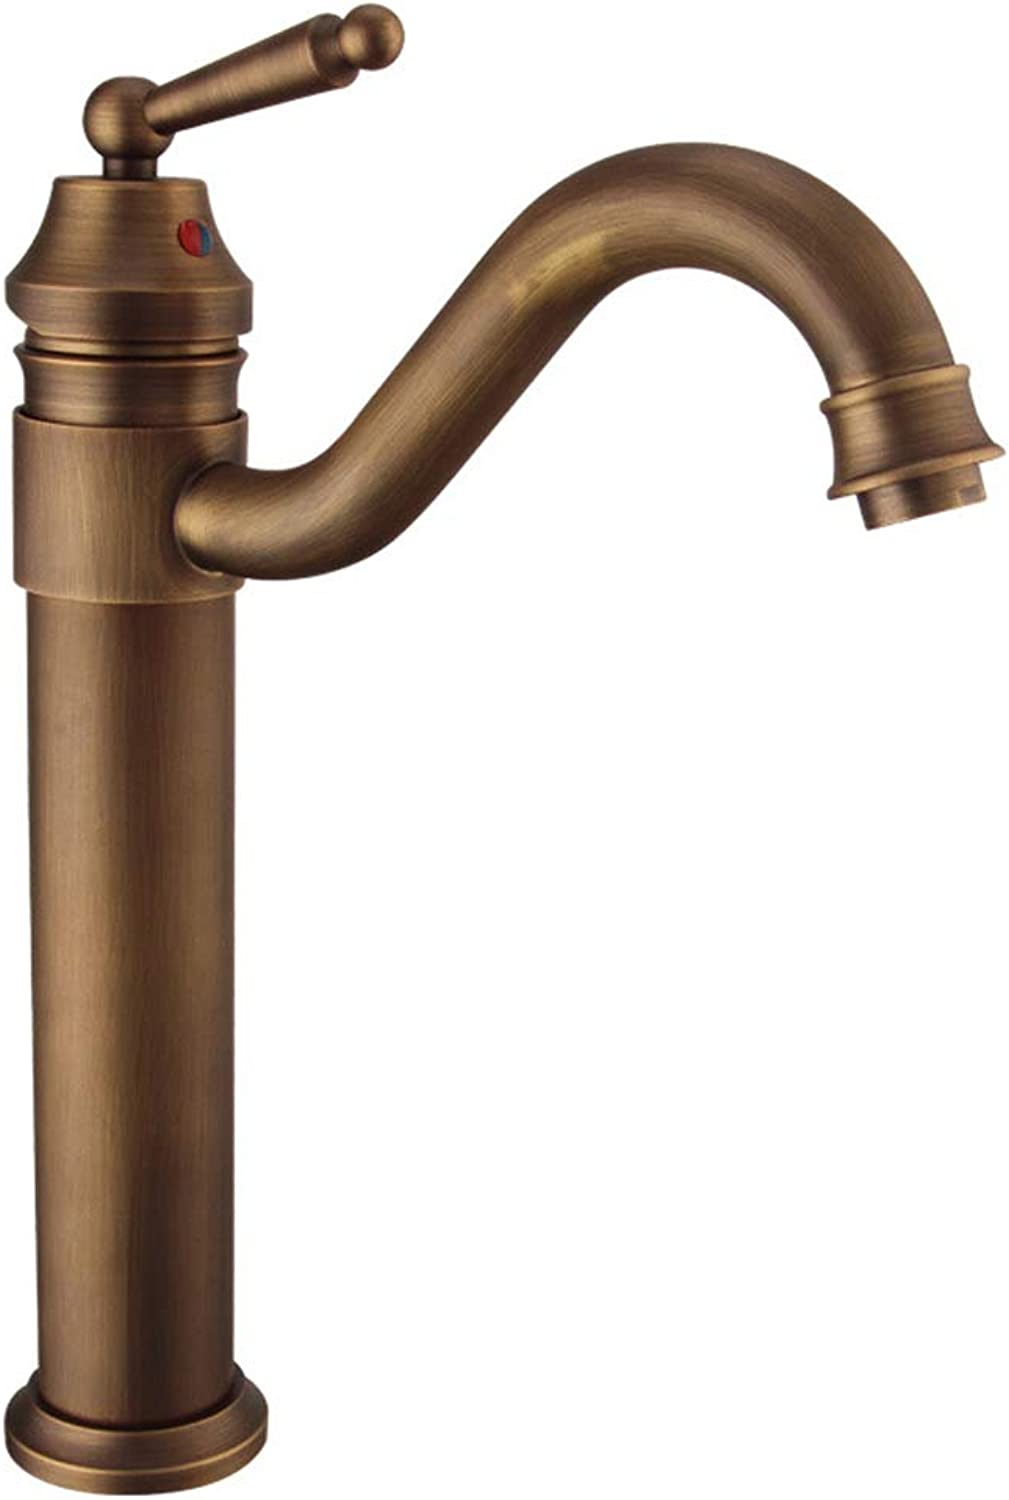 YBHNB Bathroom Sink Taps, Full Copper Finish Taps European Single Hole Retro Hot and Cold Mix redary Spout Antique Basin Faucet(Kitchen Taps)